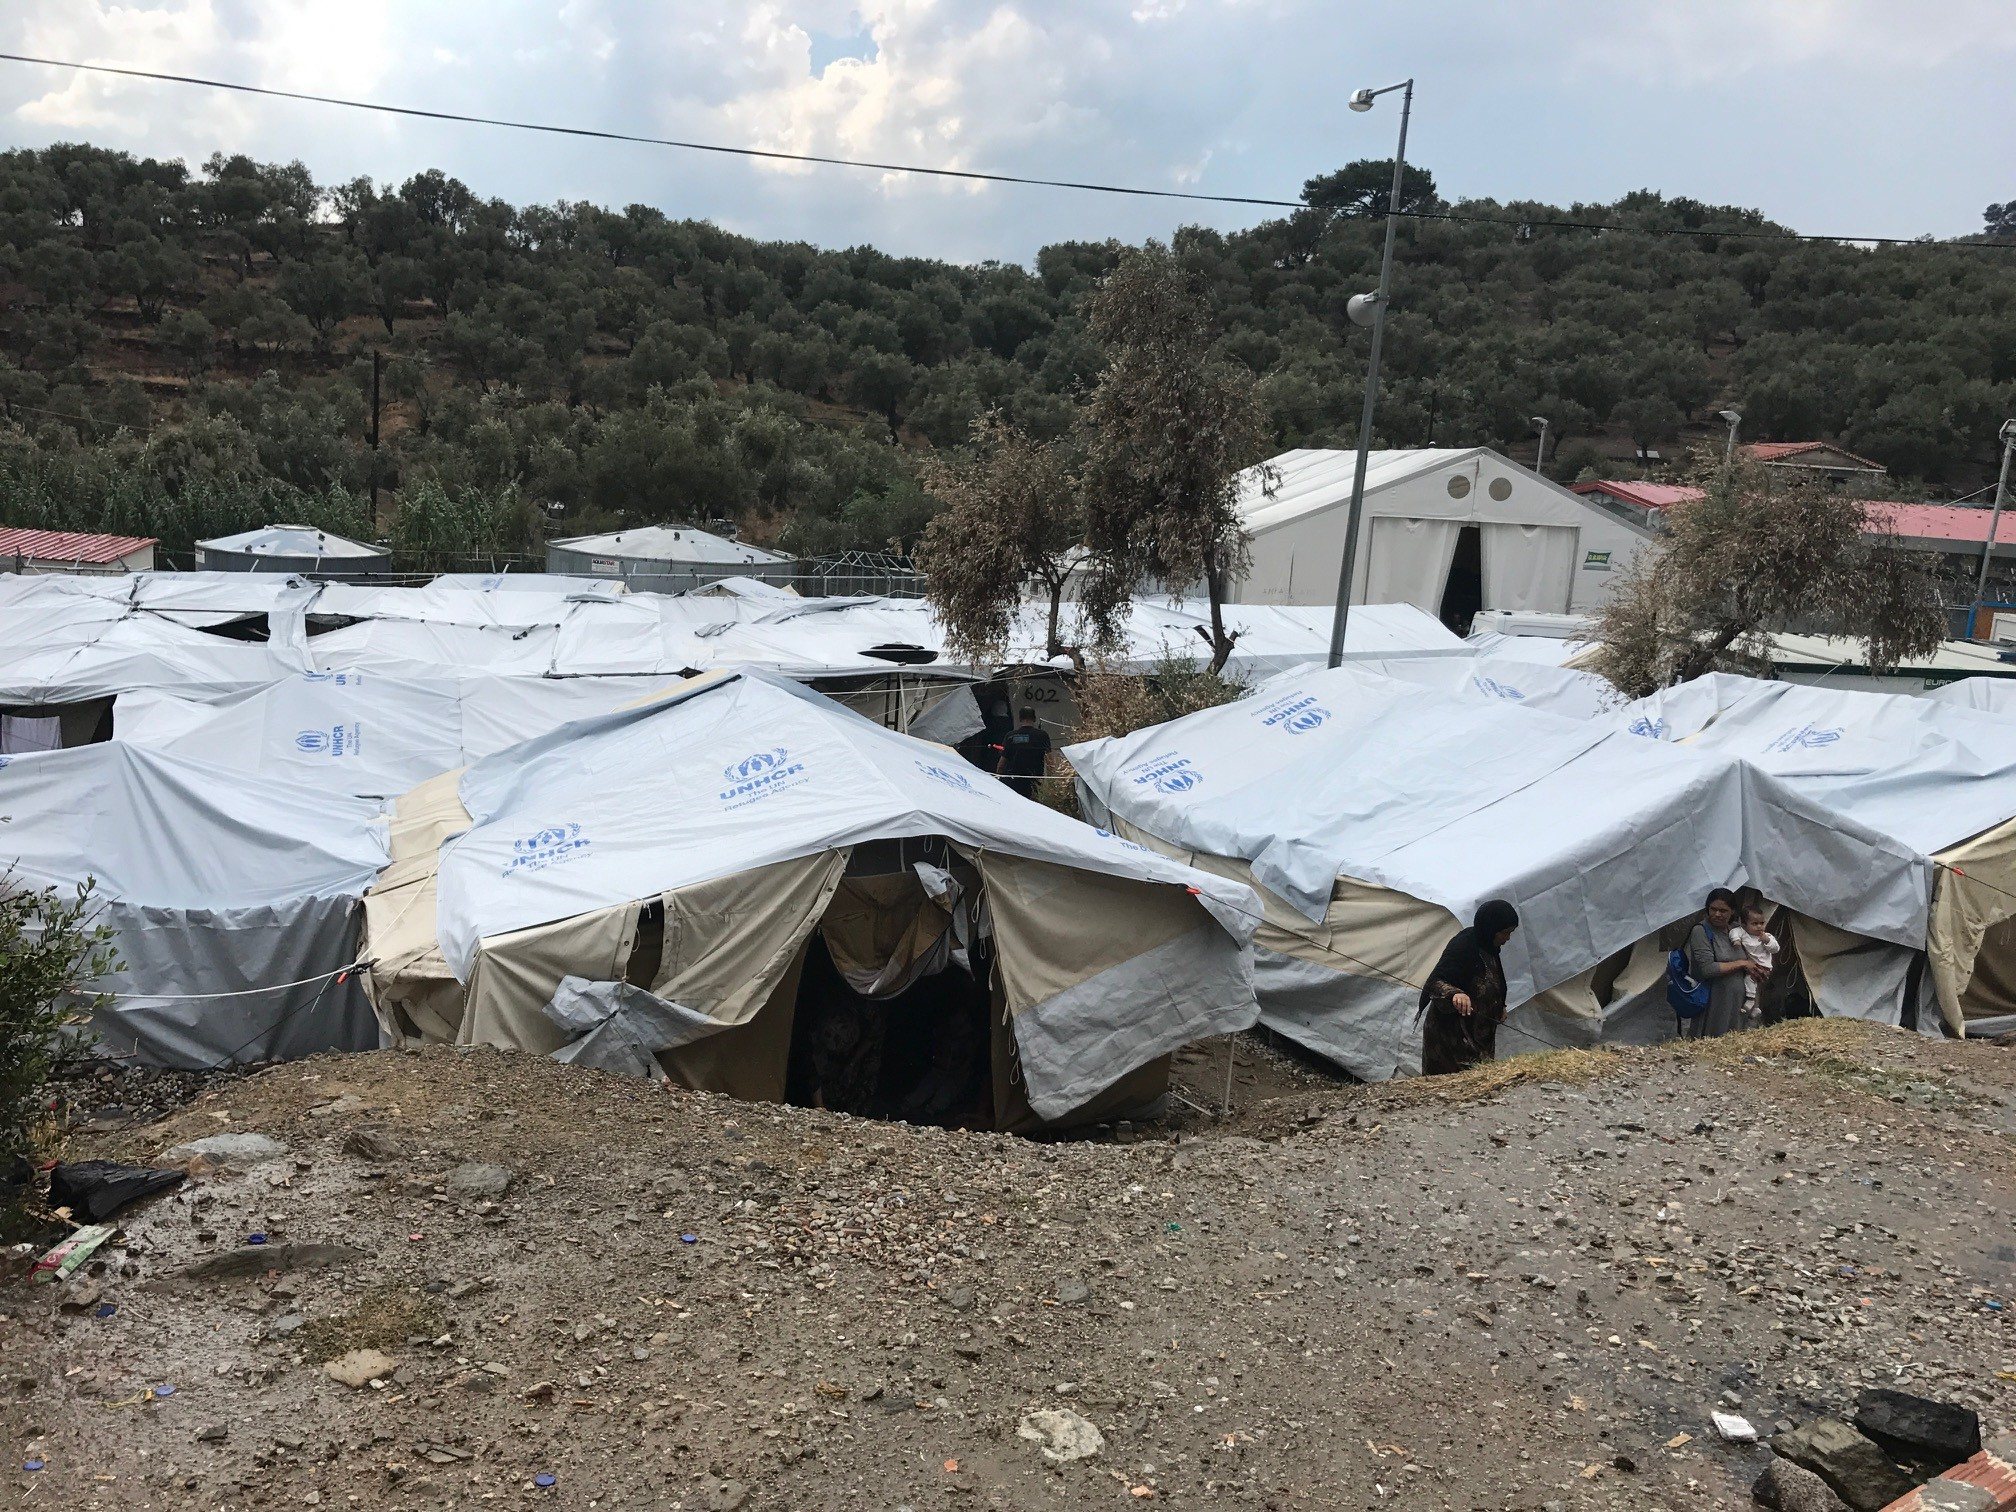 Greece/EU: Move asylum seekers to safety